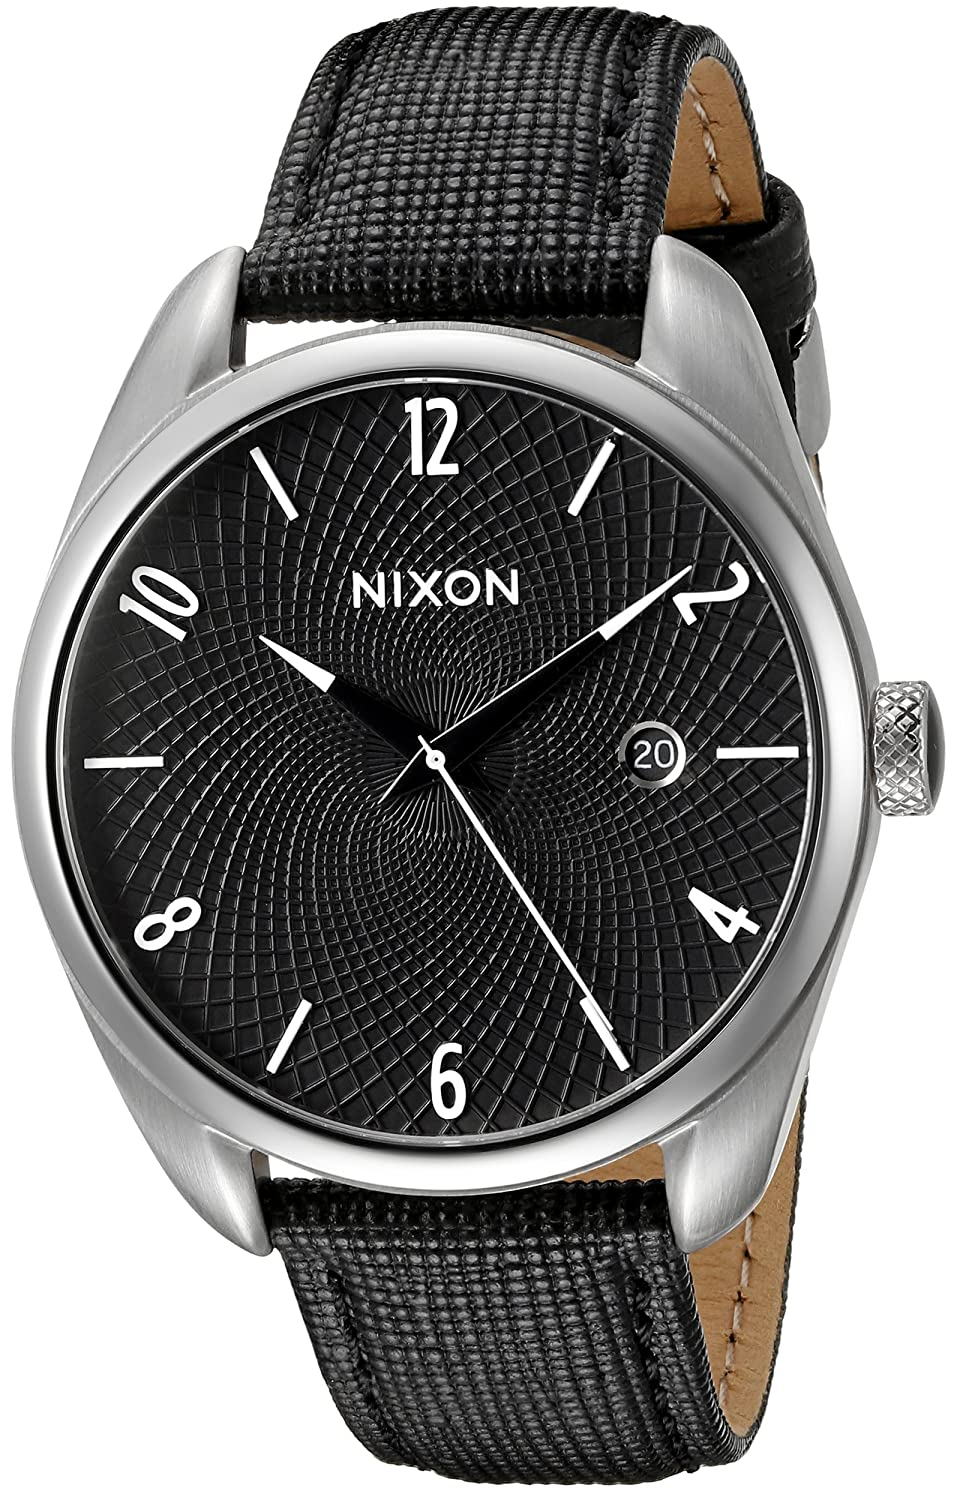 50dca335c Amazon.com: Nixon Women's A473000 Bullet Black Watch With Leather Band:  Watches